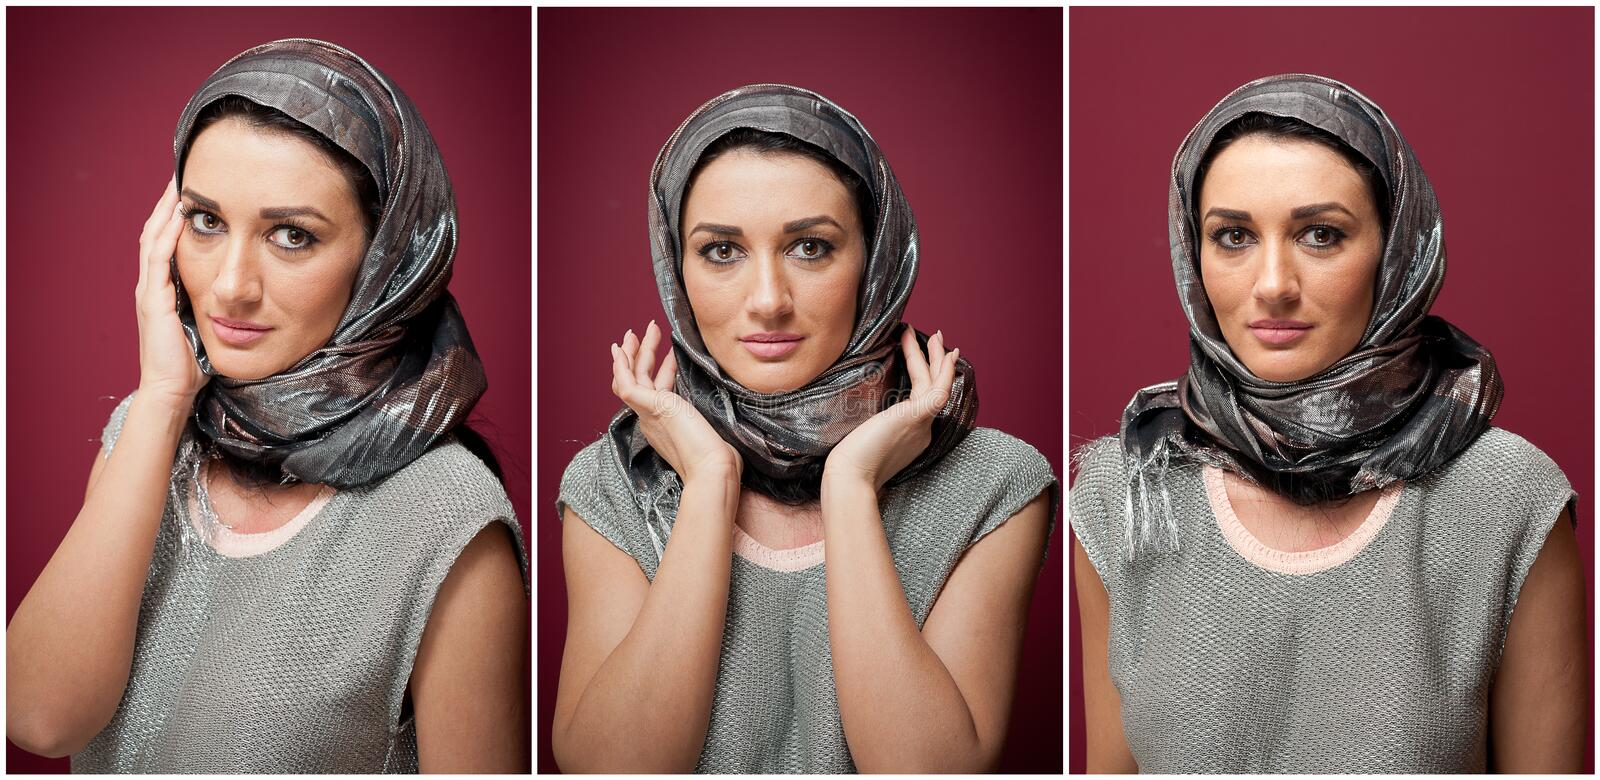 Attractive brunette woman in gray blouse and headscarf posing dramatic on purple background. Female art portrait, studio shot stock image